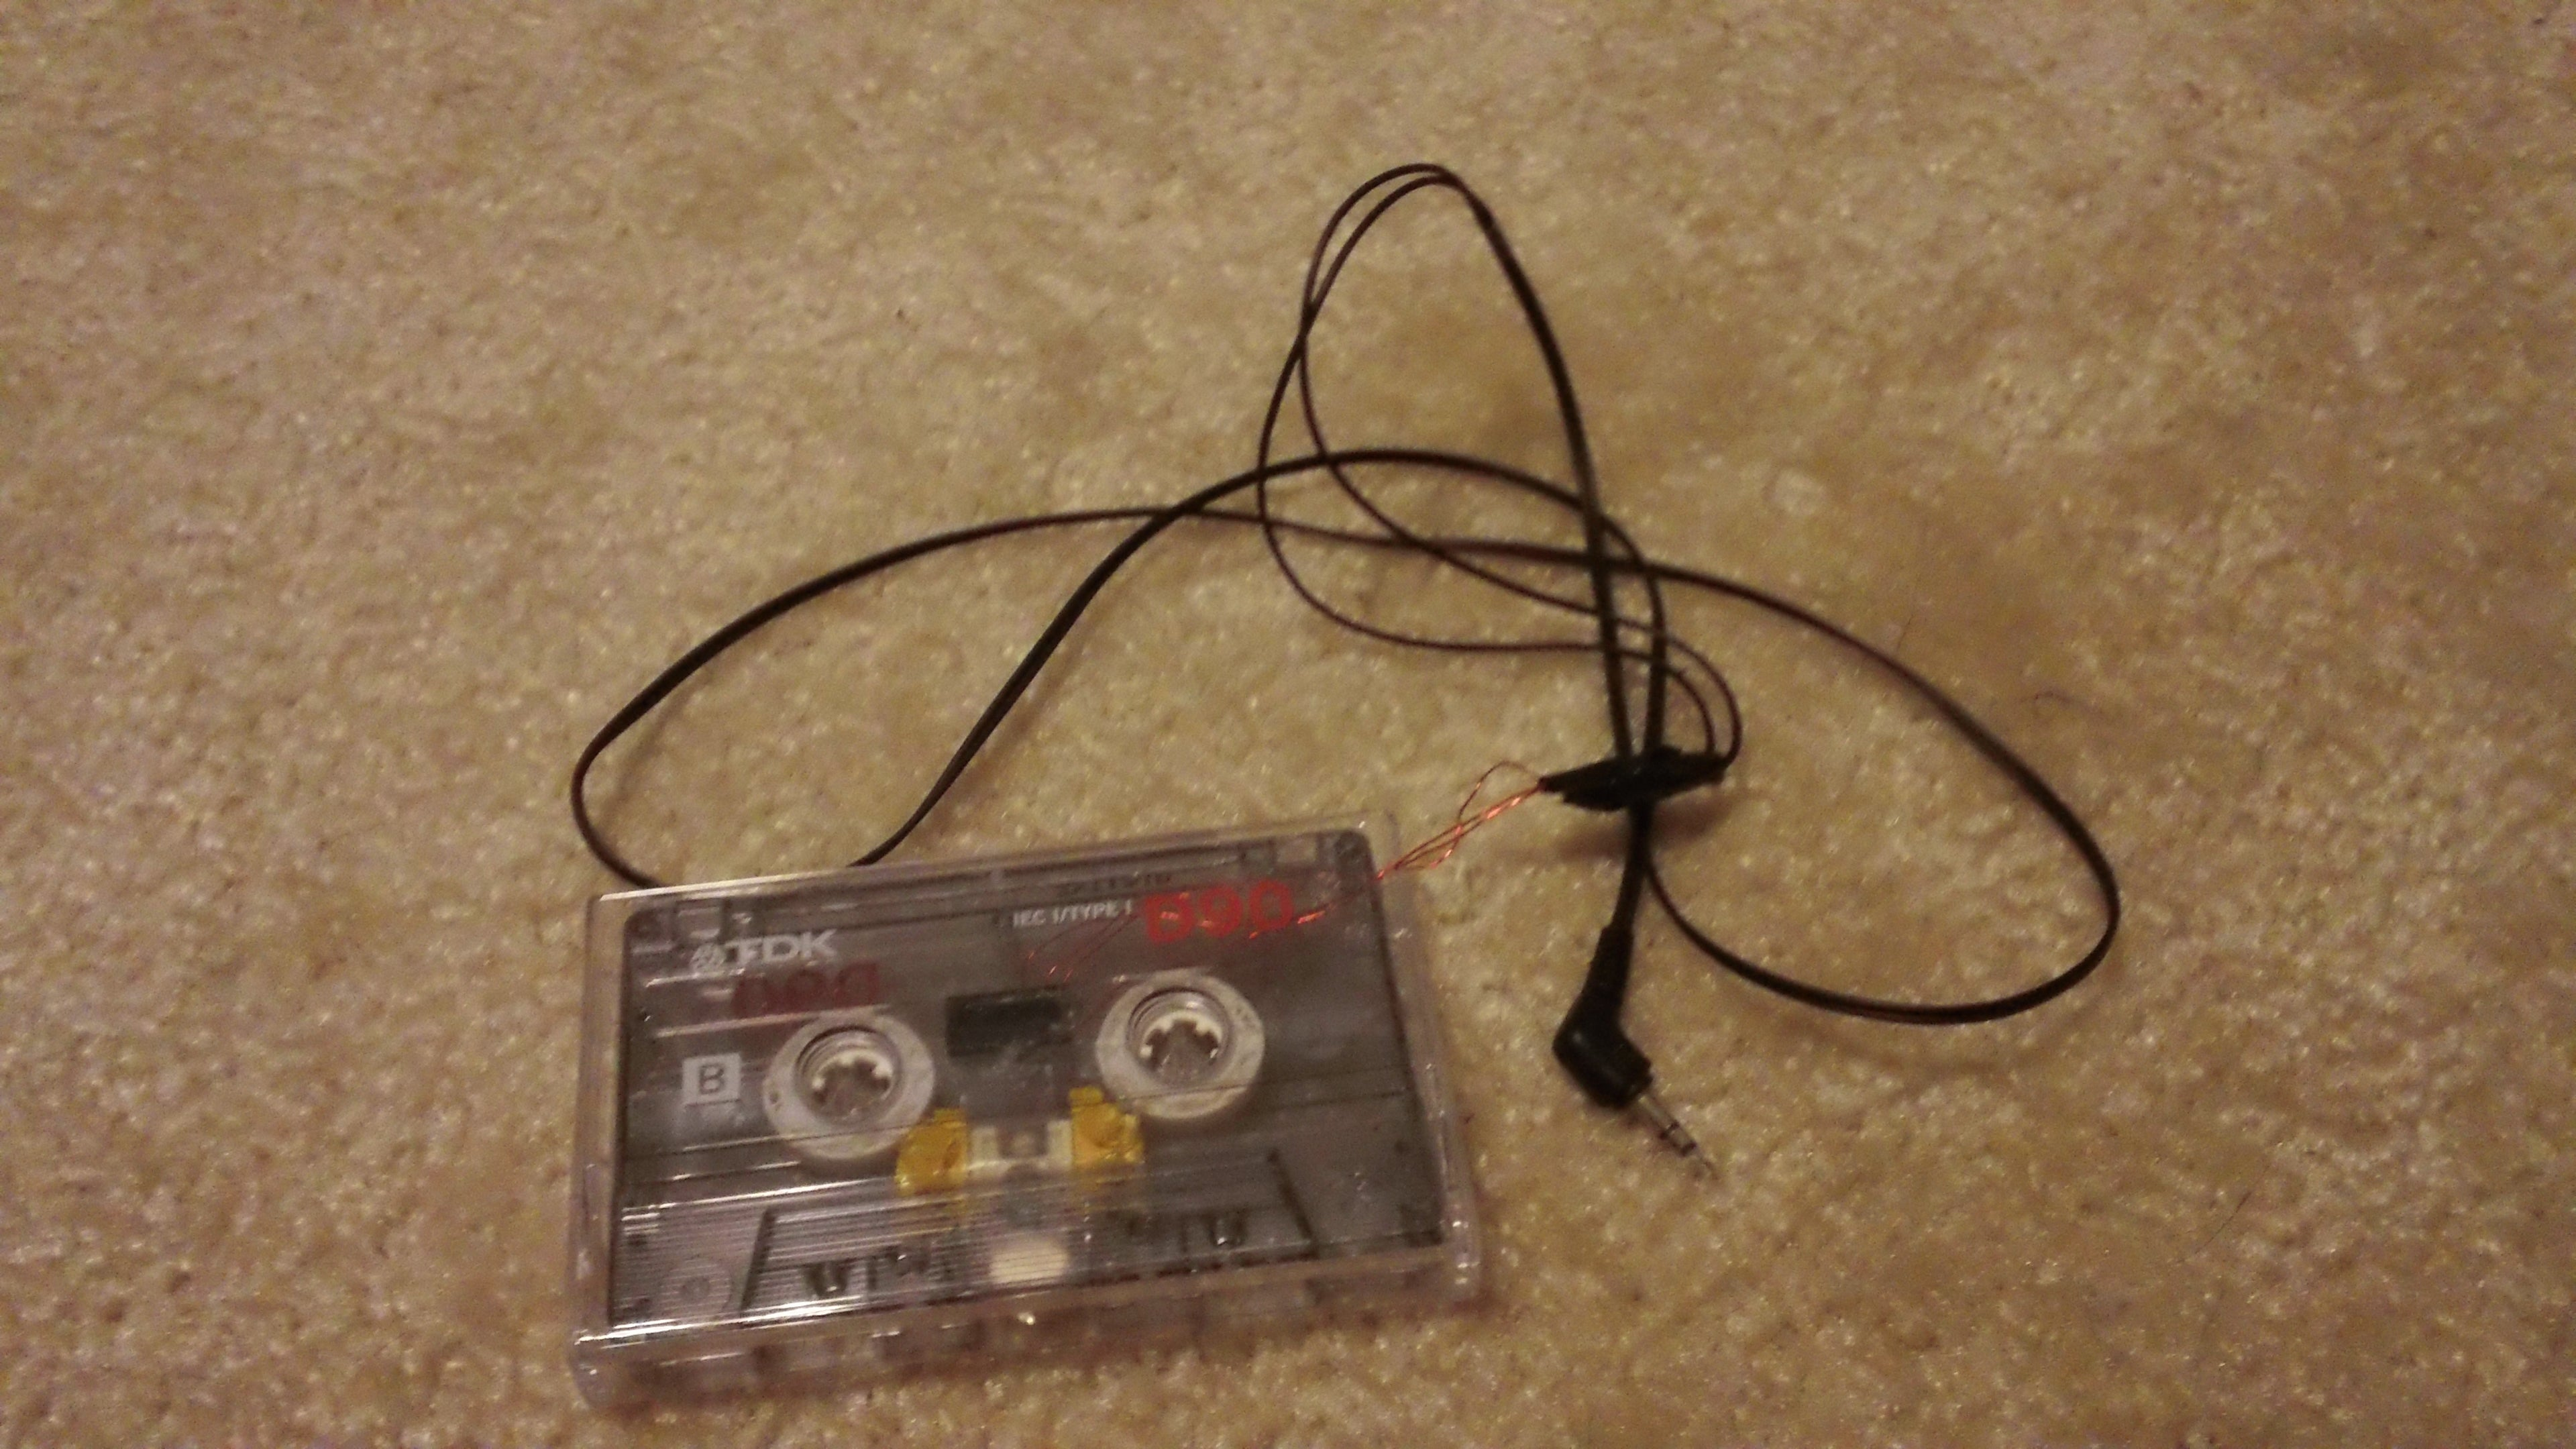 DIY MP3 to Cassette or Instrument to Cassette Adapter : 11 Steps -  InstructablesInstructables